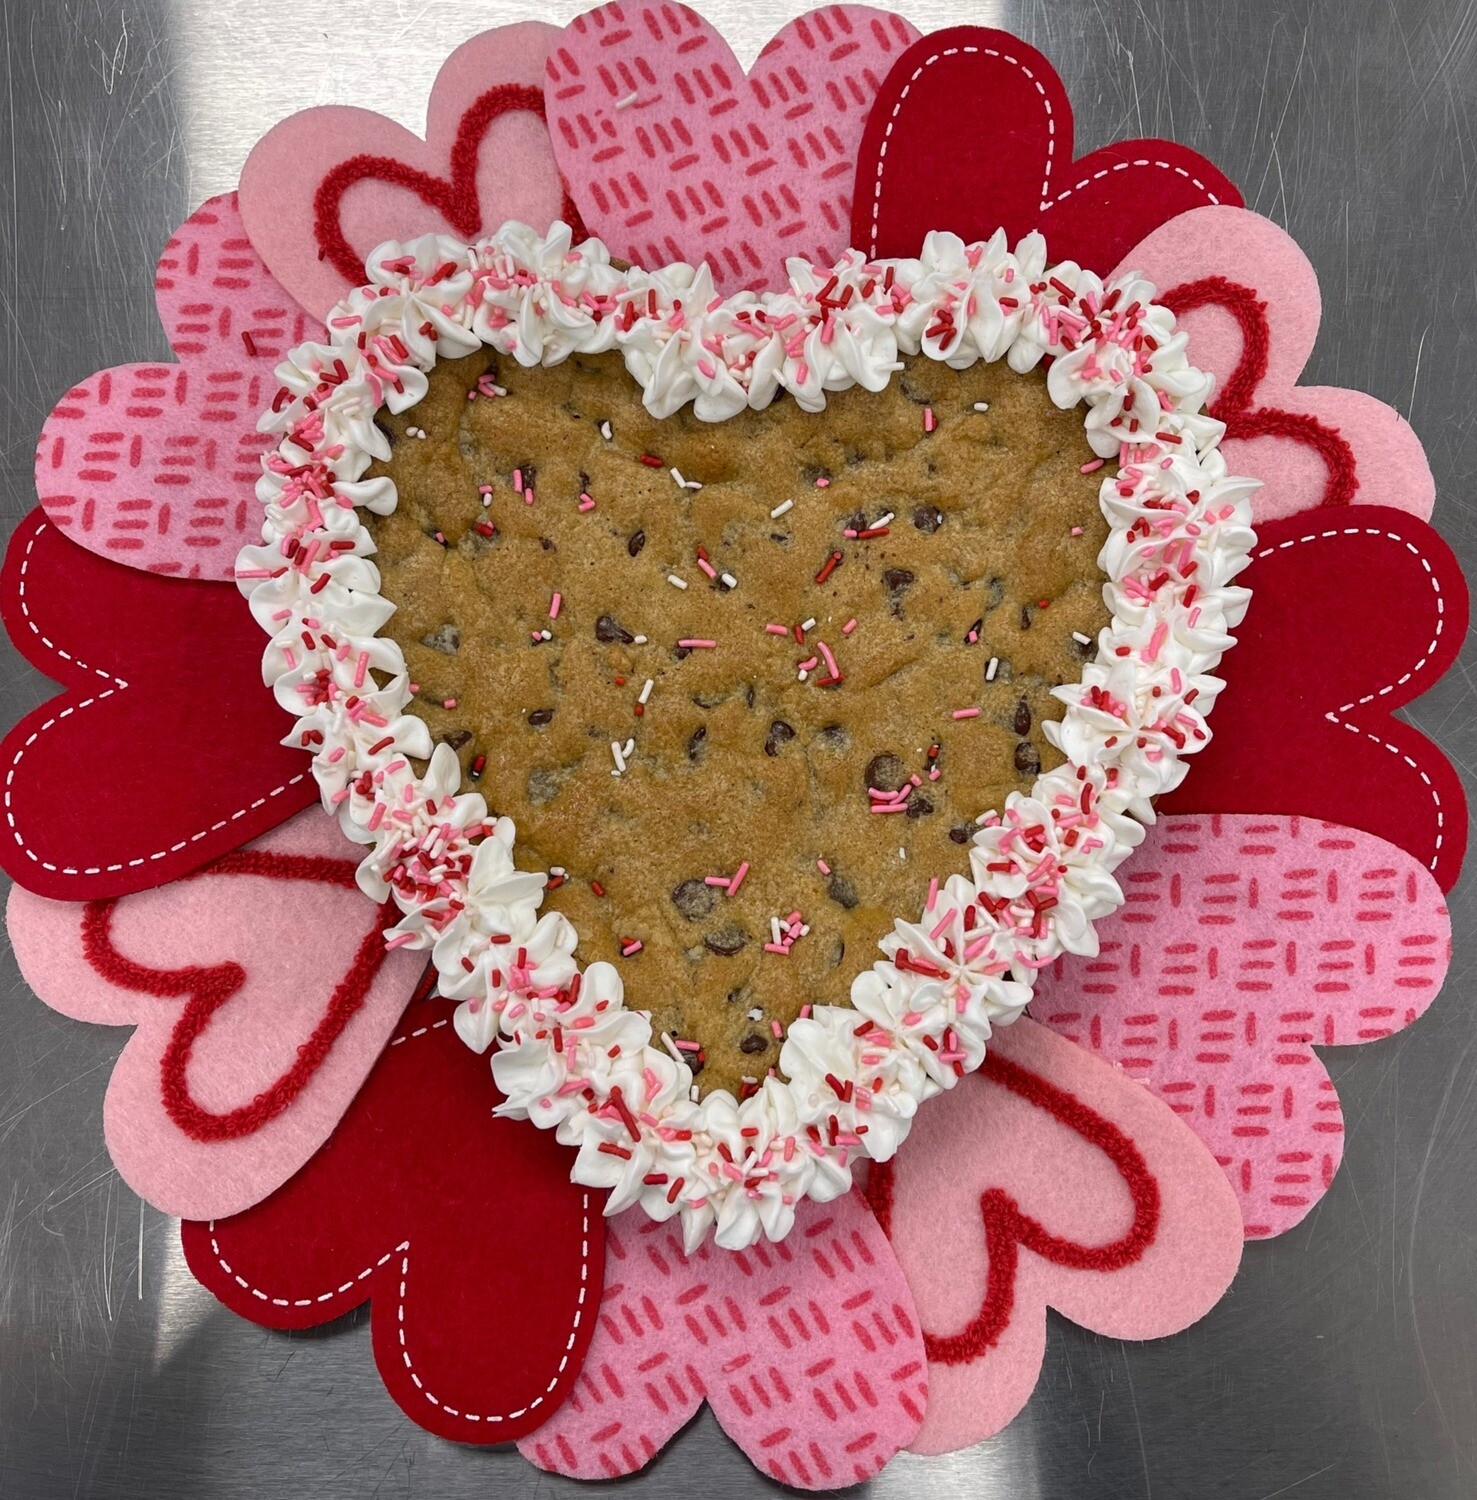 PRE-ORDER & IN-STORE PICKUP ONLY: Heart Choc Chip Cookie Cake